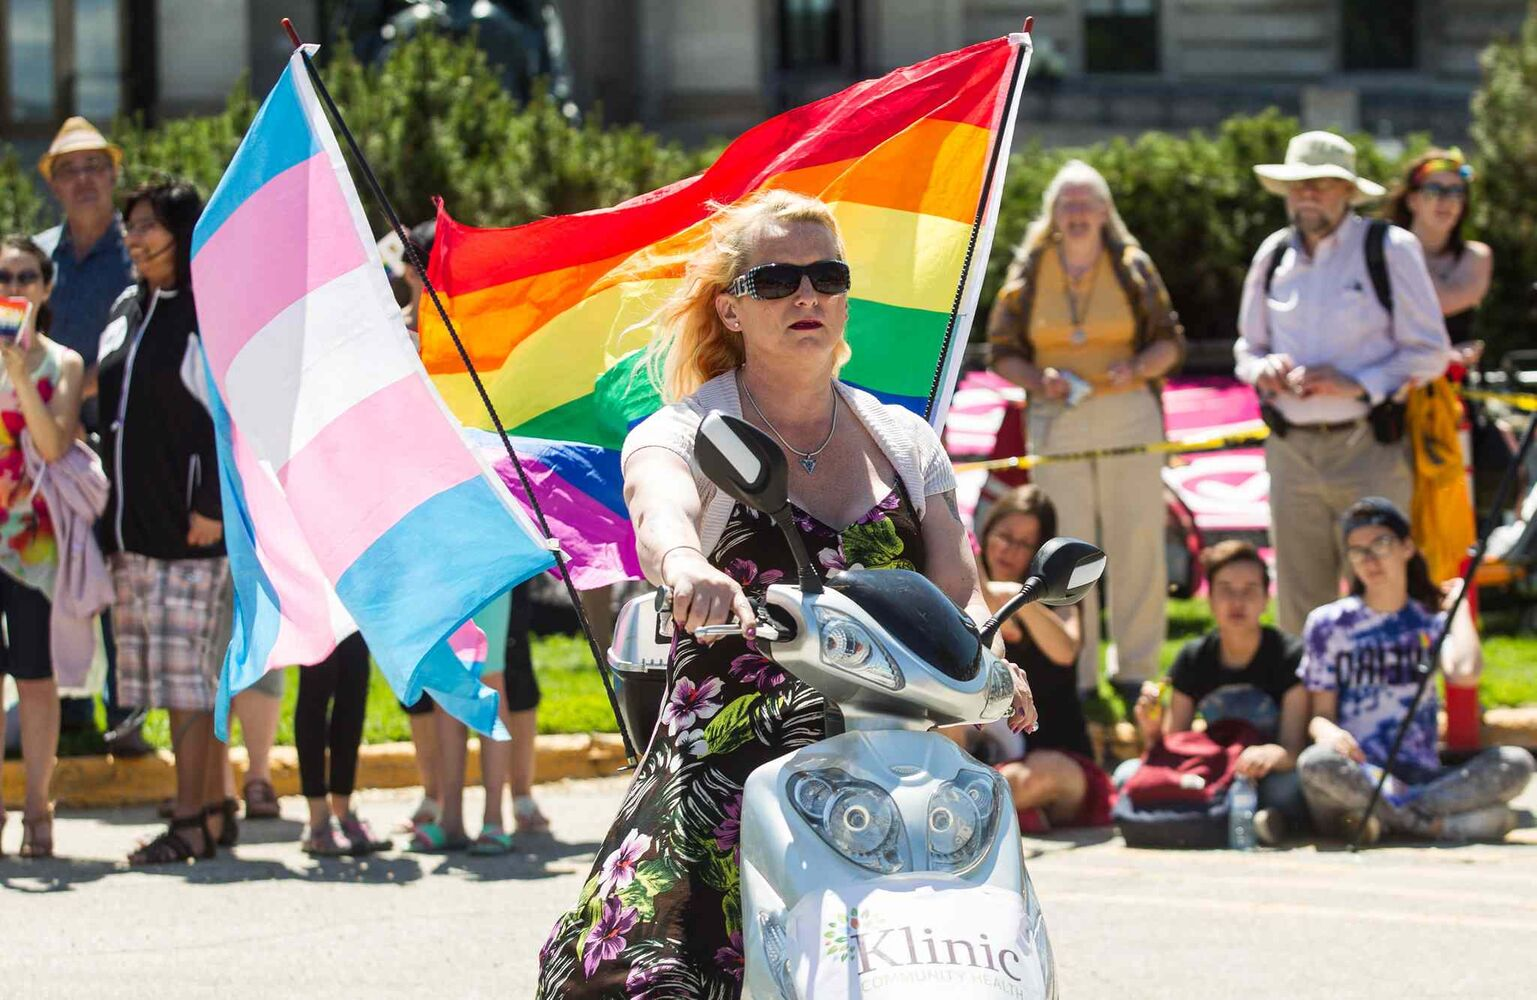 Kelly Harrison takes part in the Pride Parade Sunday. (Mike Deal / Winnipeg Free Press)